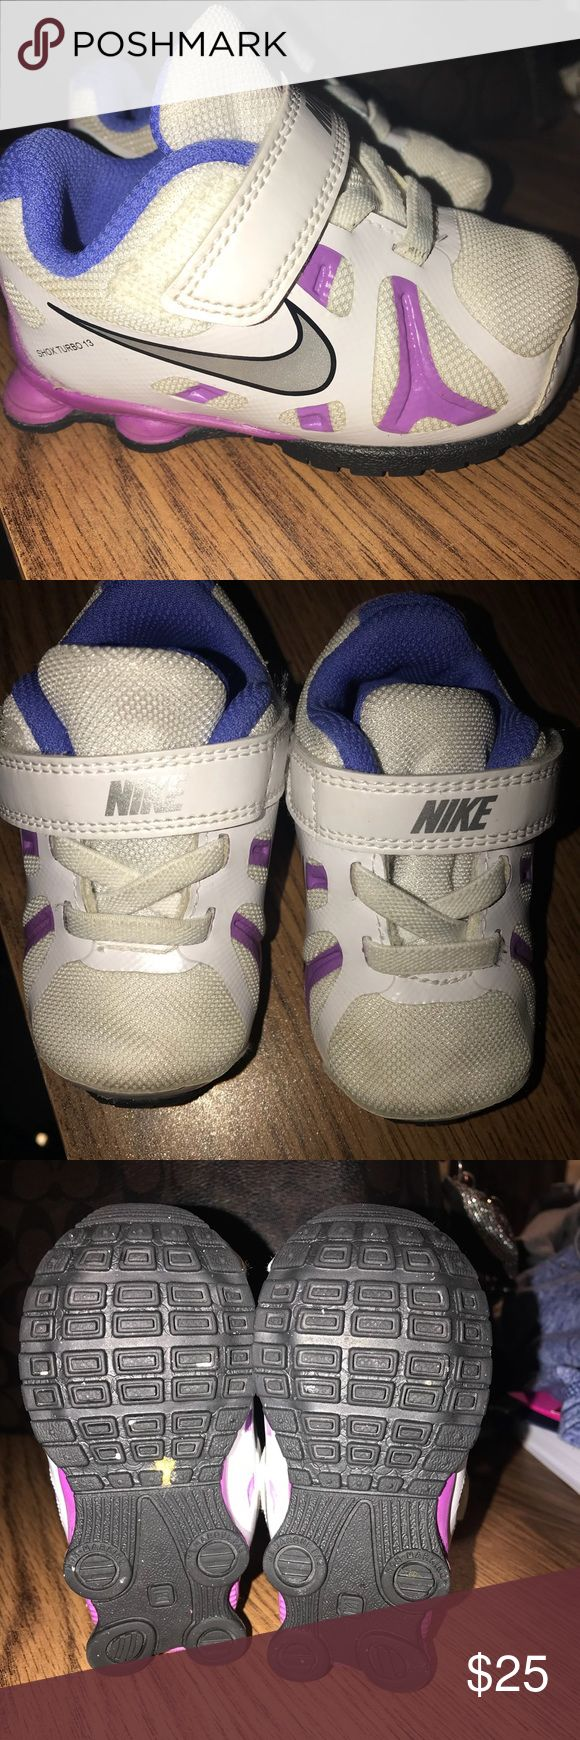 Purple Nike Shox Turbo 13 Size 4C EUC  Nike Shox Turbo Little Girls Running Shoes TDV Kids 525238-101 White Purple Nike Shox Turbo Girls Running Shoes 13 TDV Kids 525238-101 White Purple  Specifications Features Breathable Material, Lightweight Comfort Brand Nike Gender Women Age Group Child Shoe Category Girls' Shoes manufacturer_part_number 525238-101 Nike Shoes Sneakers